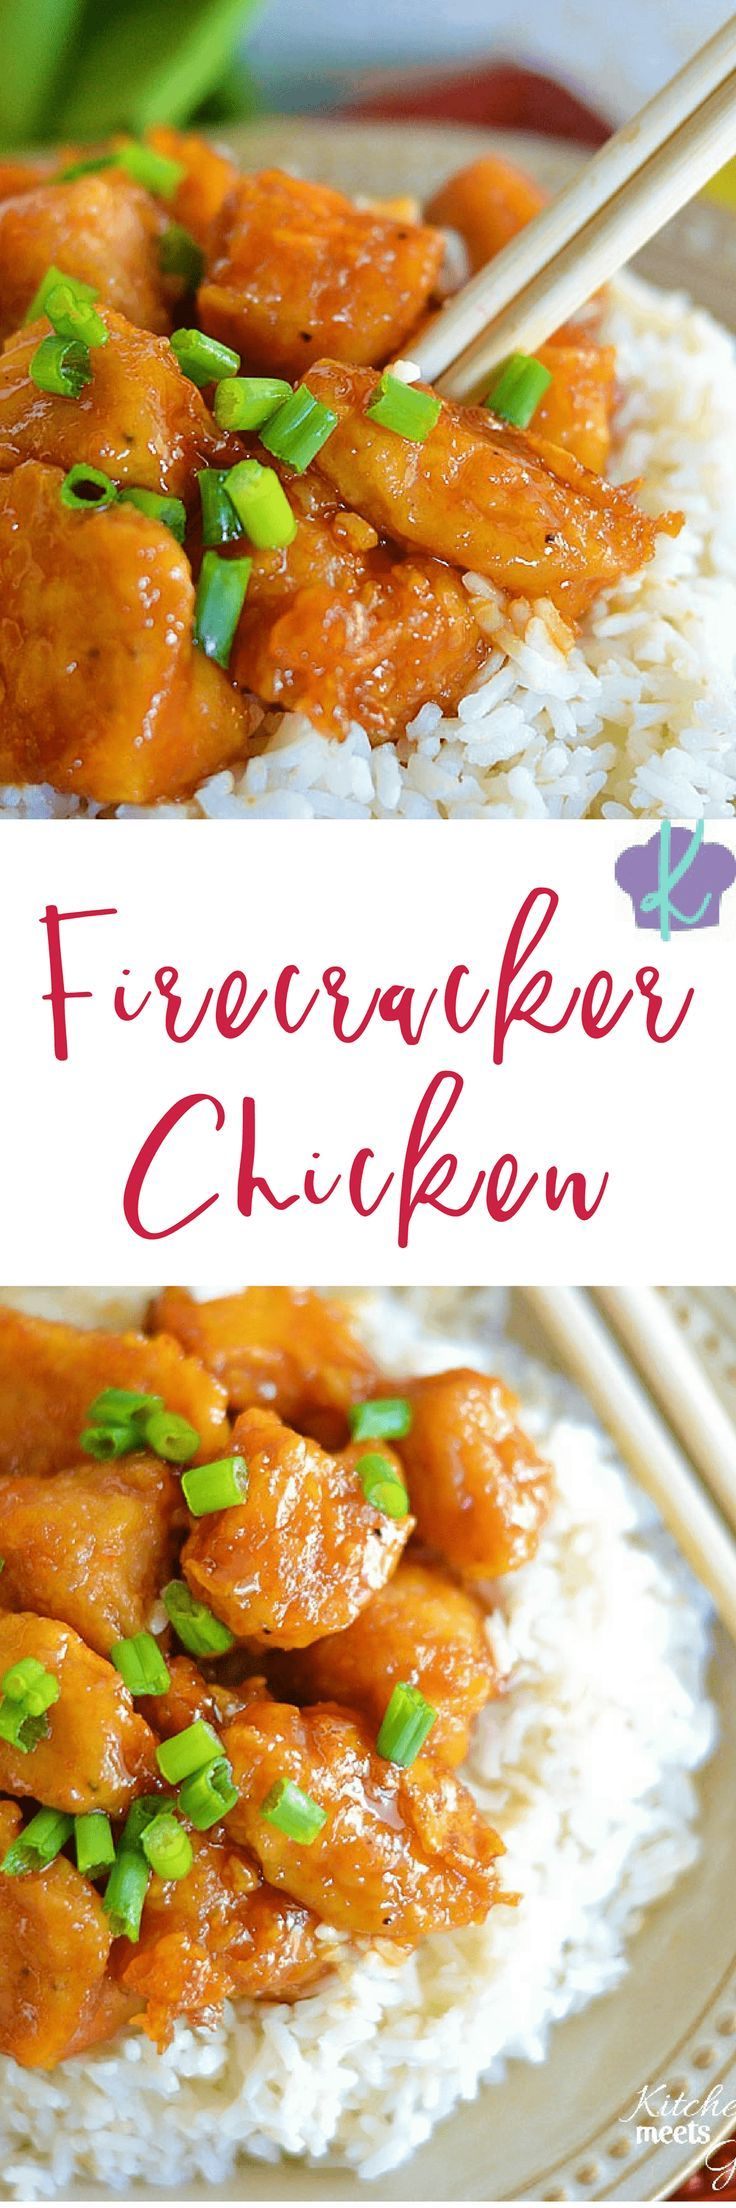 This Firecracker Chicken is the perfect mix of spicy and sweet and beats take-out hands down! | chicken recipes | sweet and spicy chicken | homemade chicken recipes | sweet and spicy recipes | how to make firecracker chicken || Kitchen Meets Girl